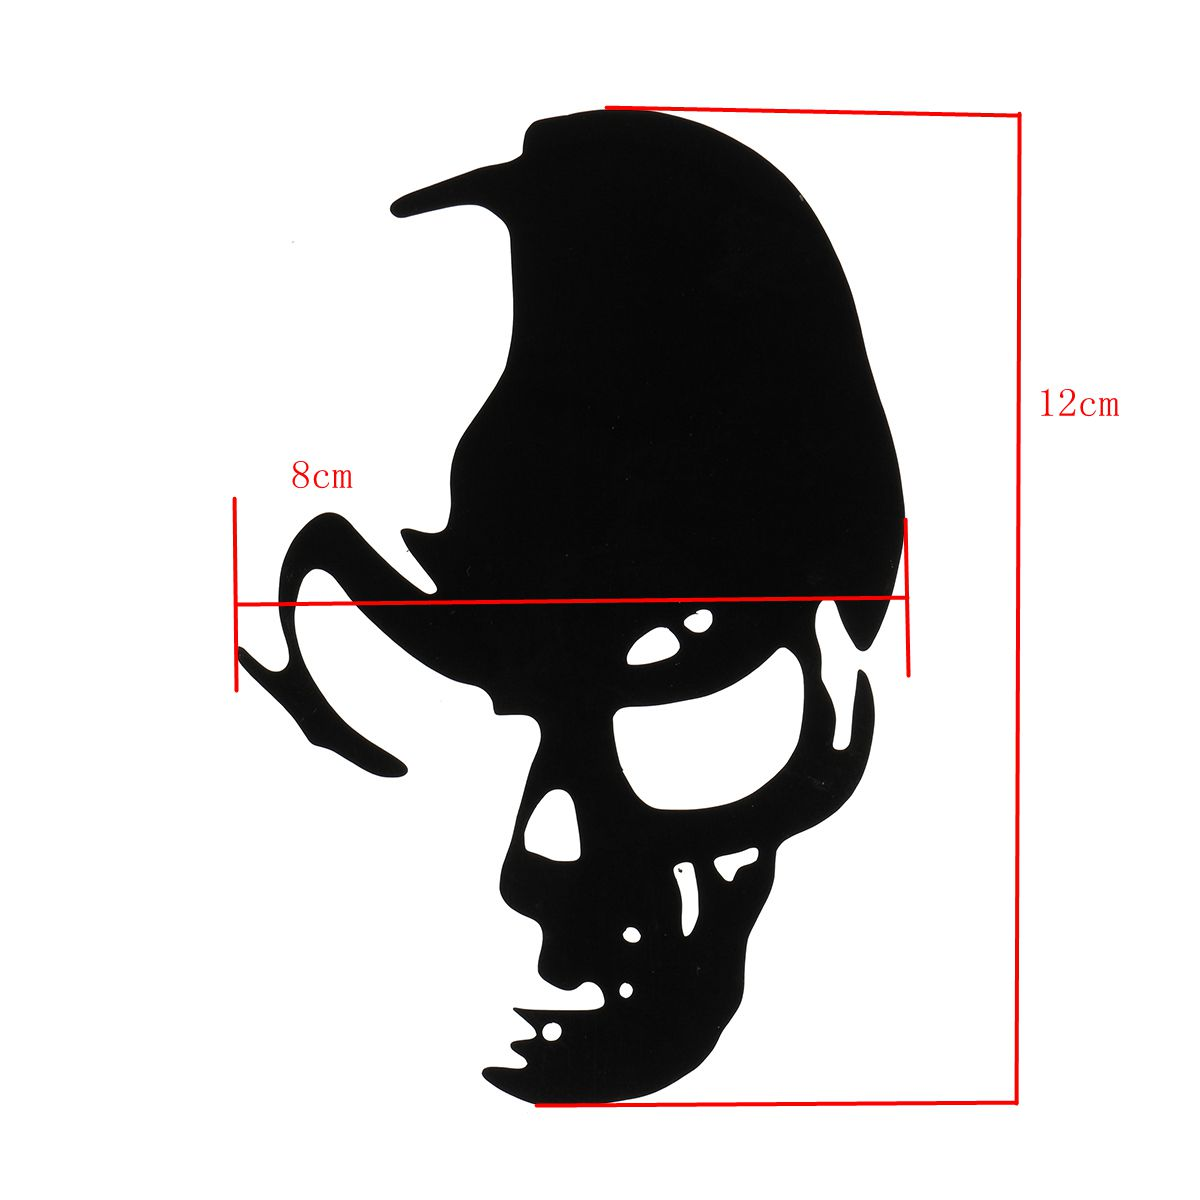 Car Skull Sticker Decal Window Truck Bumperr Styling Reflective Waterproof